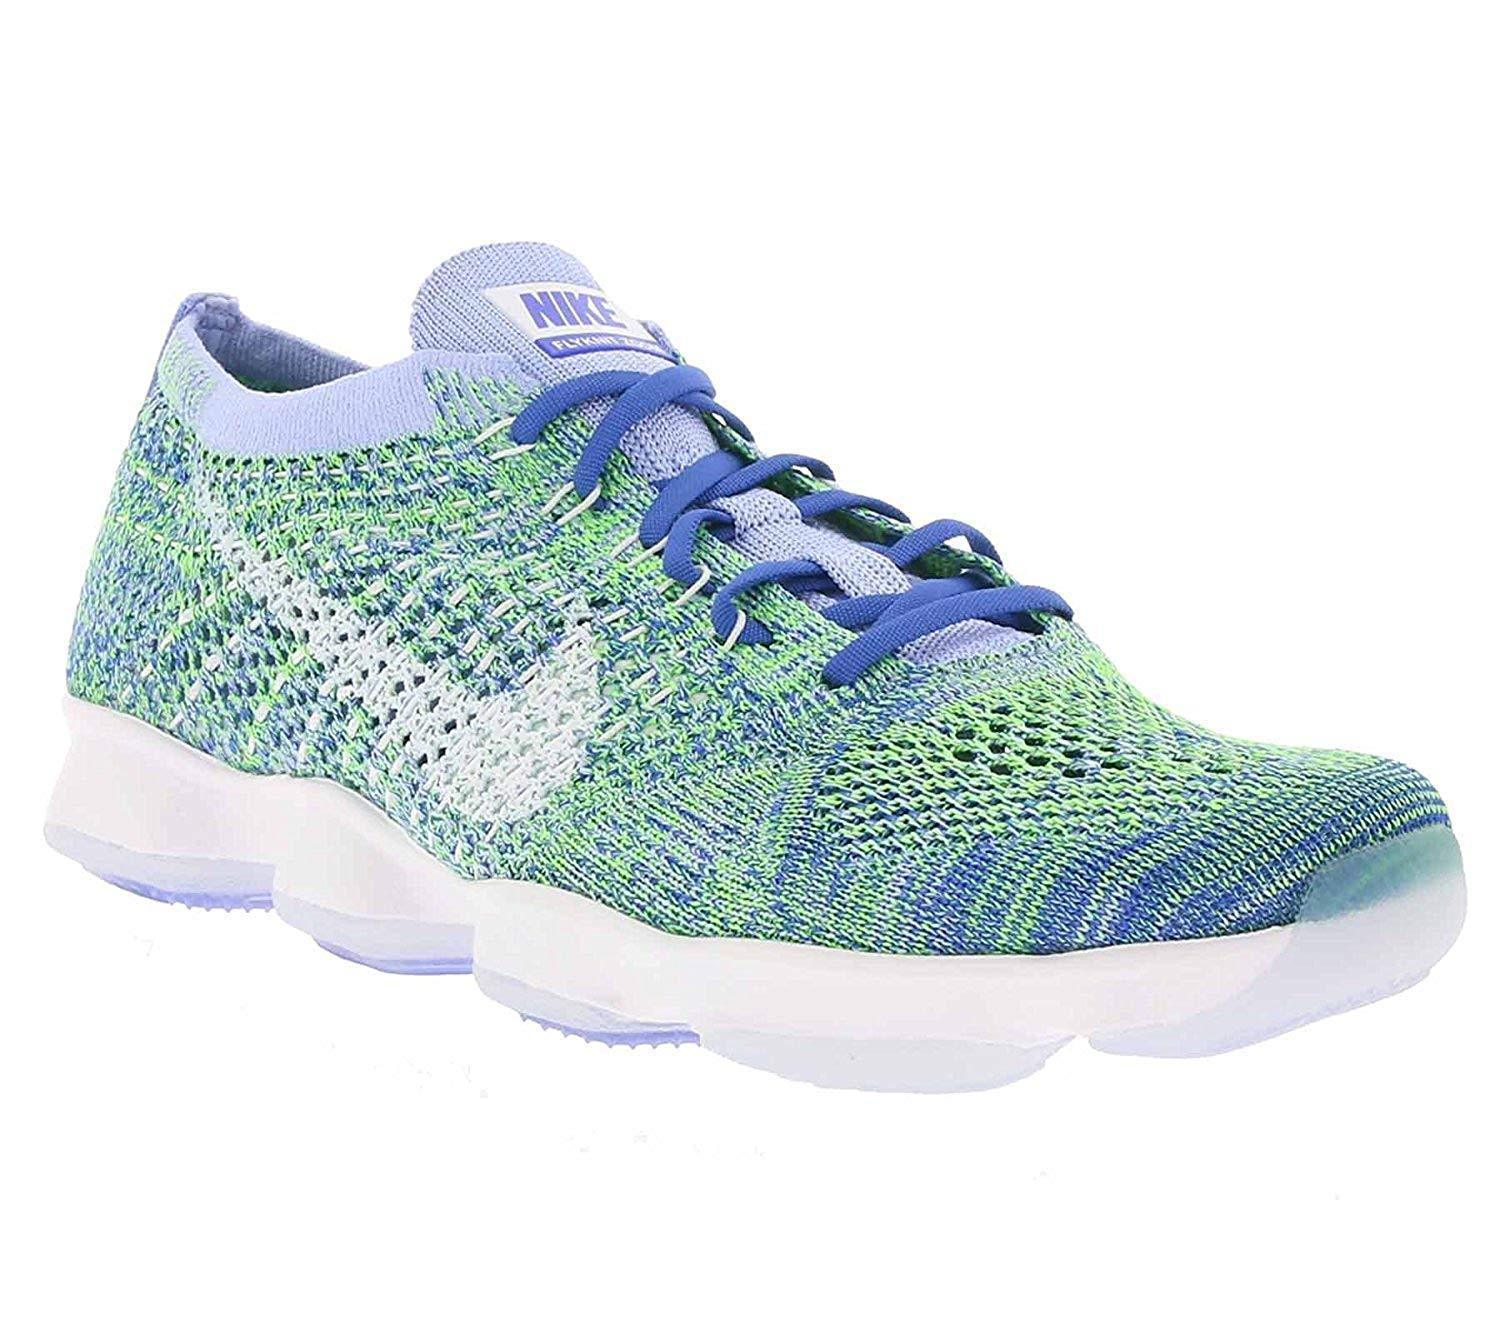 check out e76bf c94d6 Nike Flyknit Zoom Agility Training Running and 50 similar items